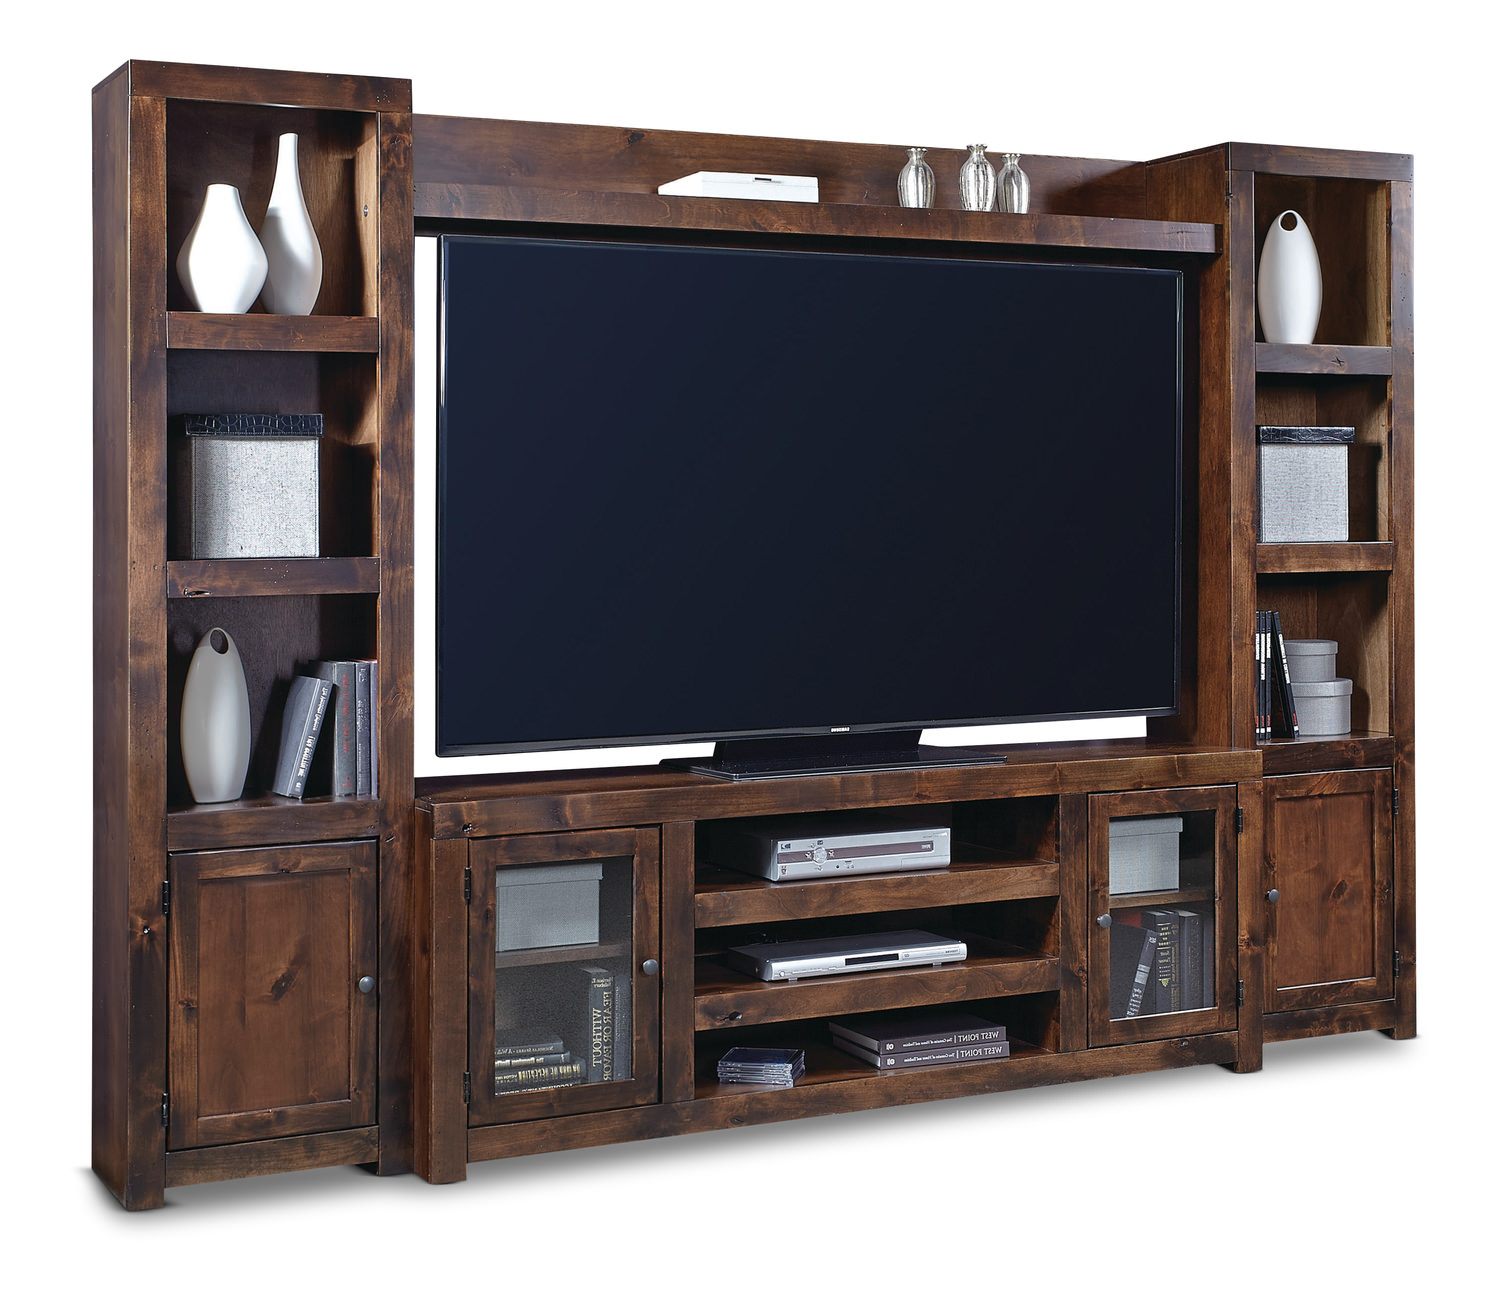 Wall Unit Equinox Knotty Alder Wall Unit  Hom Furniture  Furniture Stores